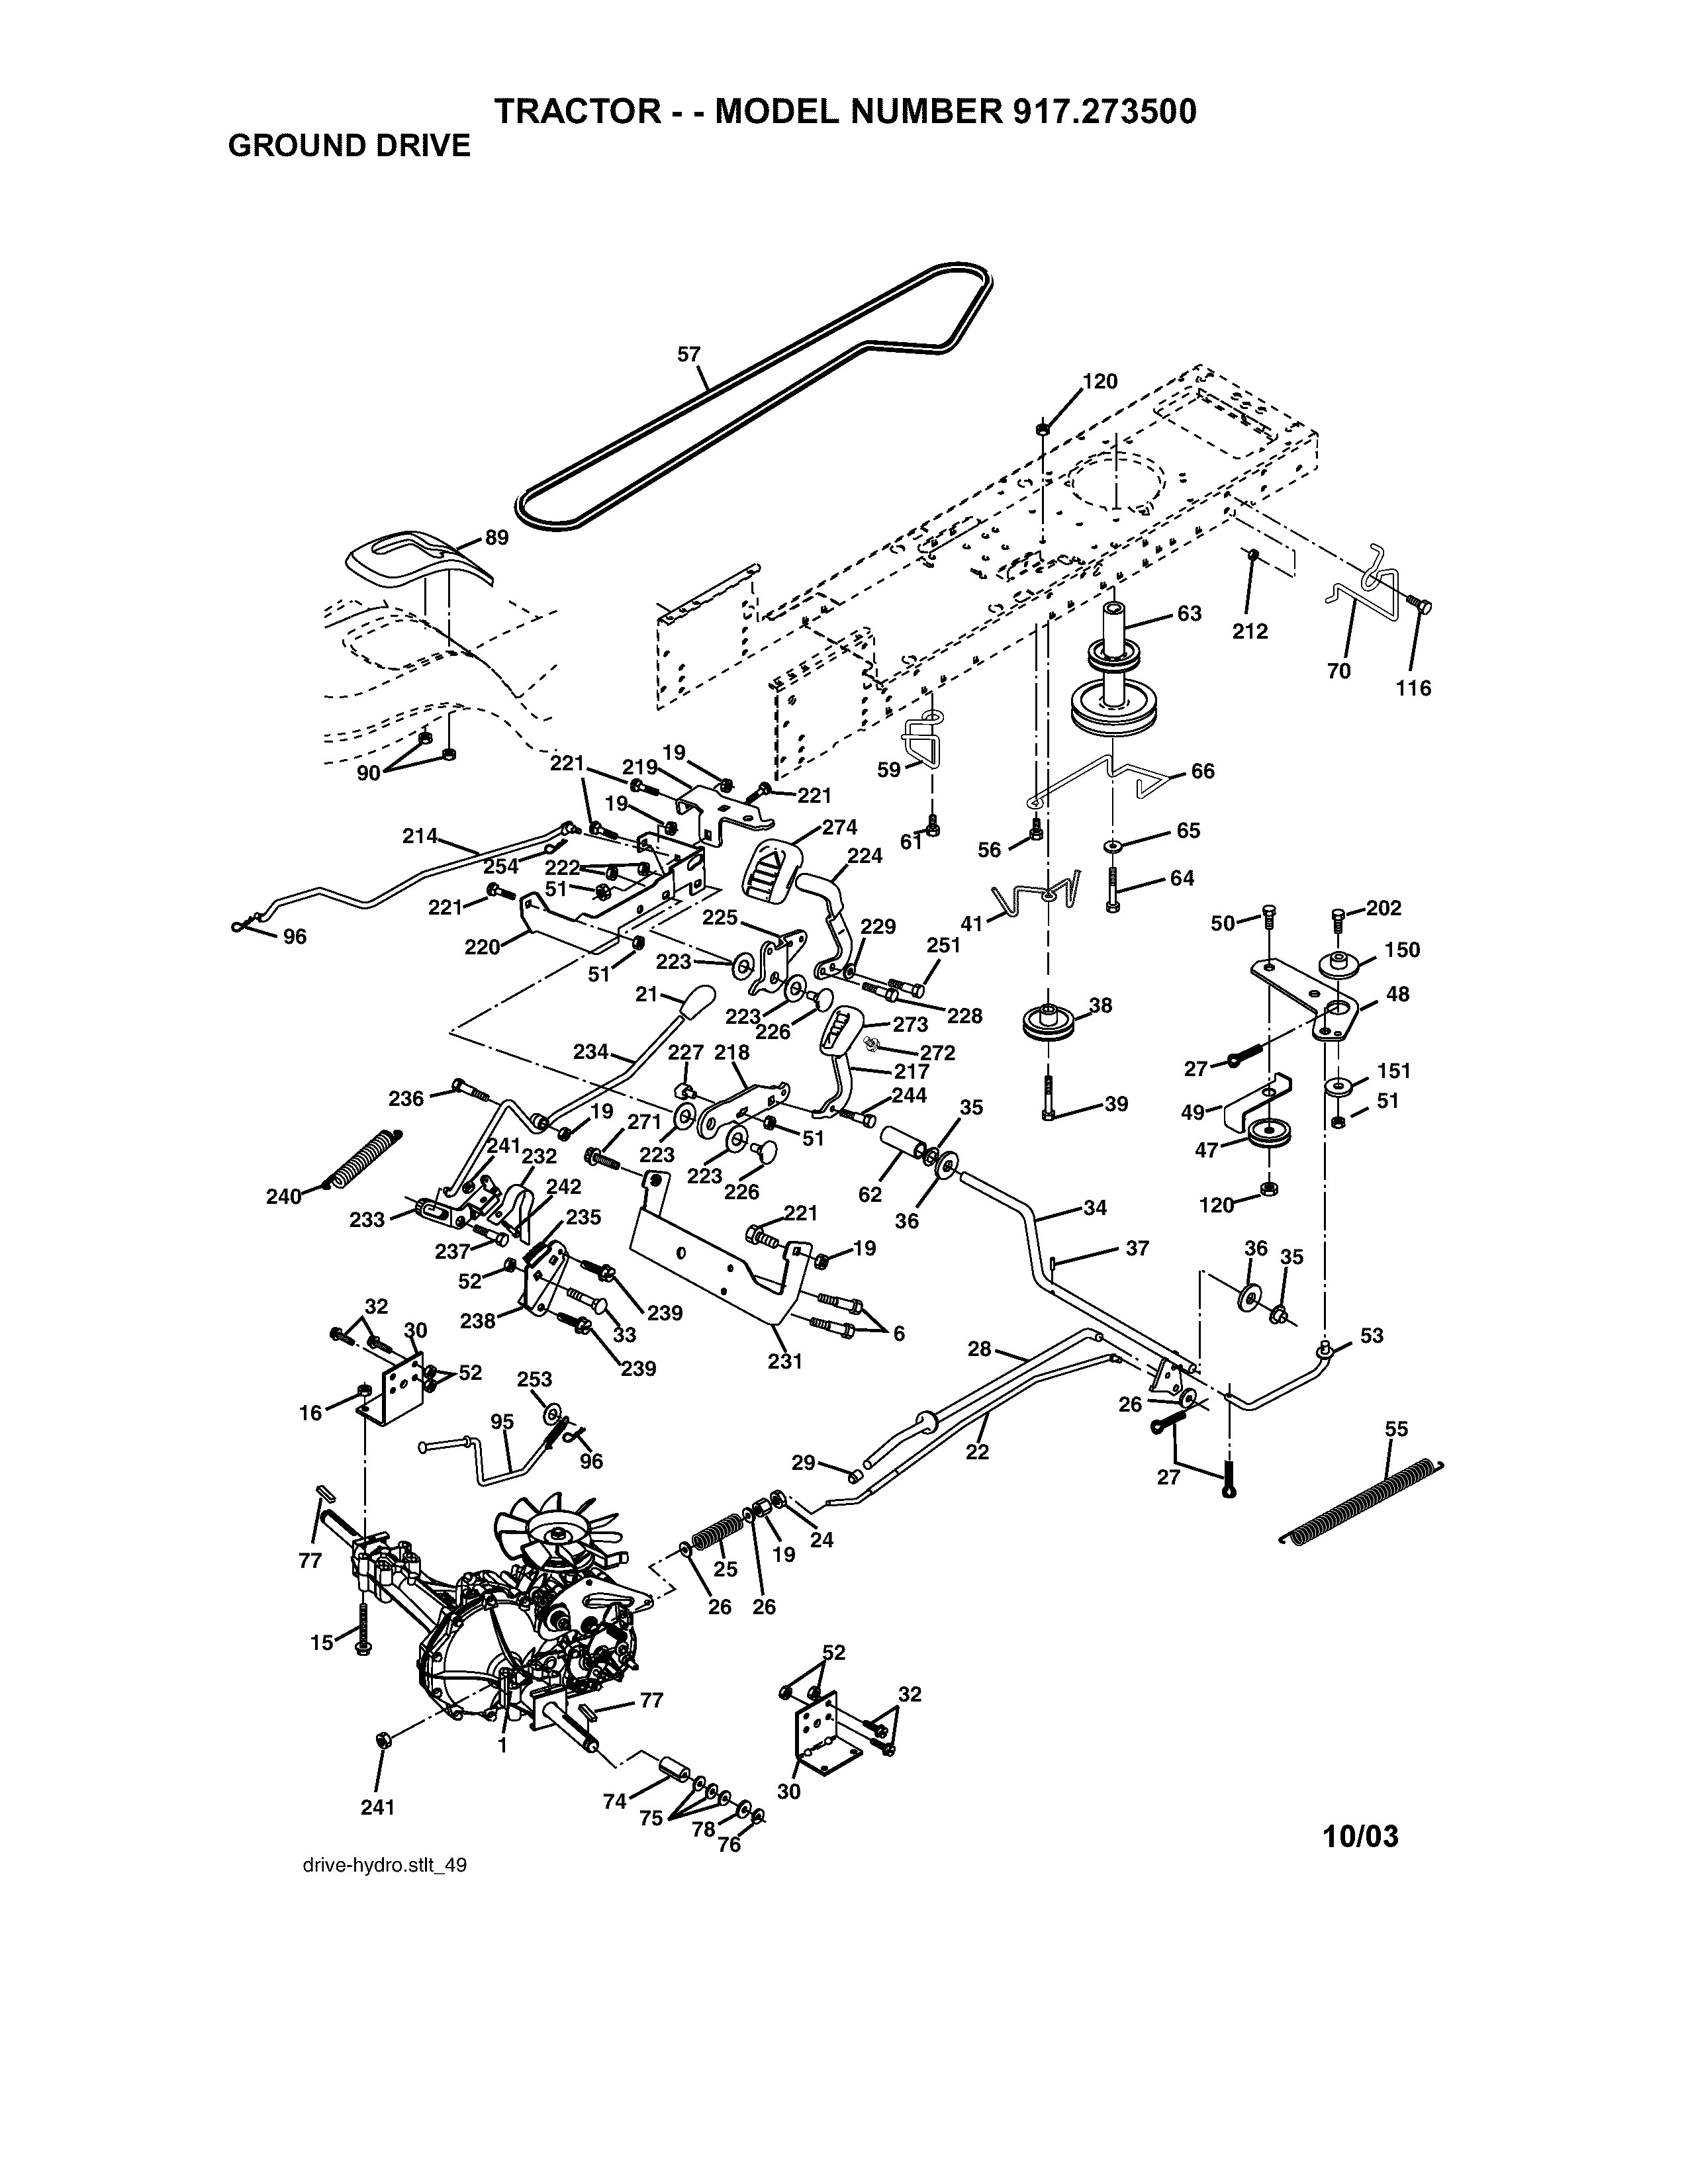 Craftsman Riding Lawn Mower Parts Diagram 917 Craftsman 16 5 Hp 42 In Mower Electric Start Automatic Of Craftsman Riding Lawn Mower Parts Diagram